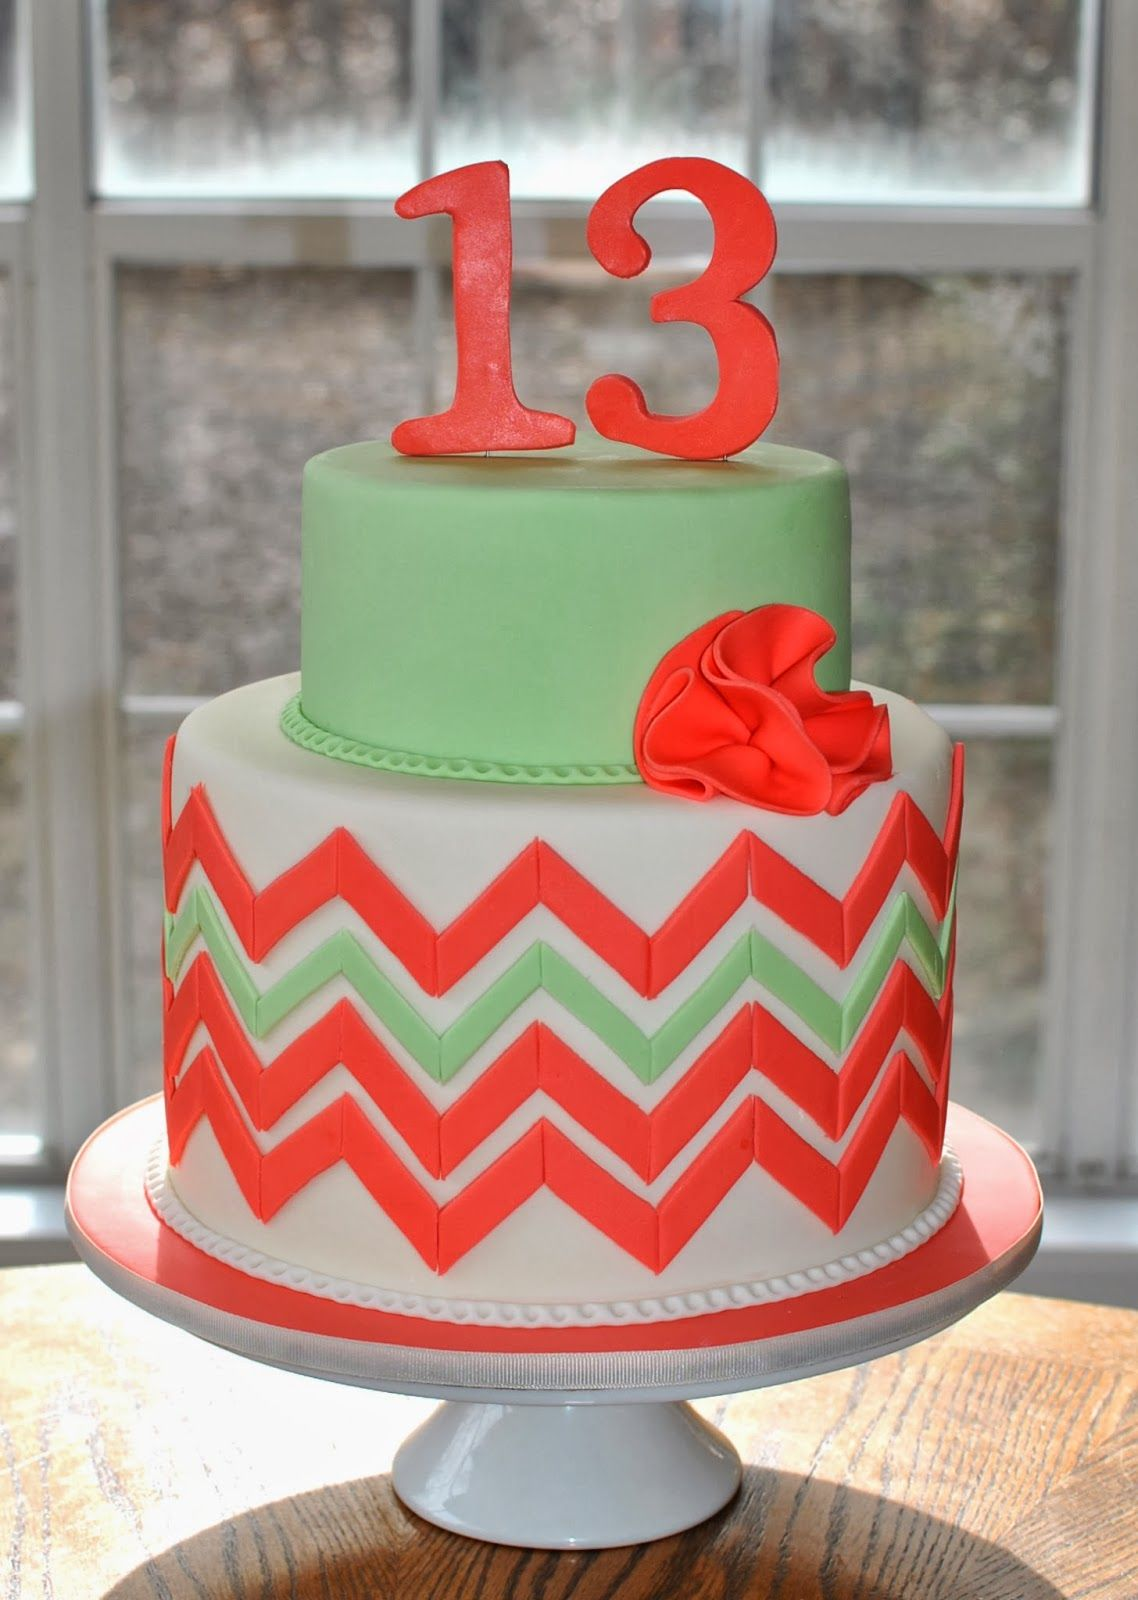 Hopes Sweet Cakes Chevron Cake Hopes Sweet Cakes Pinterest